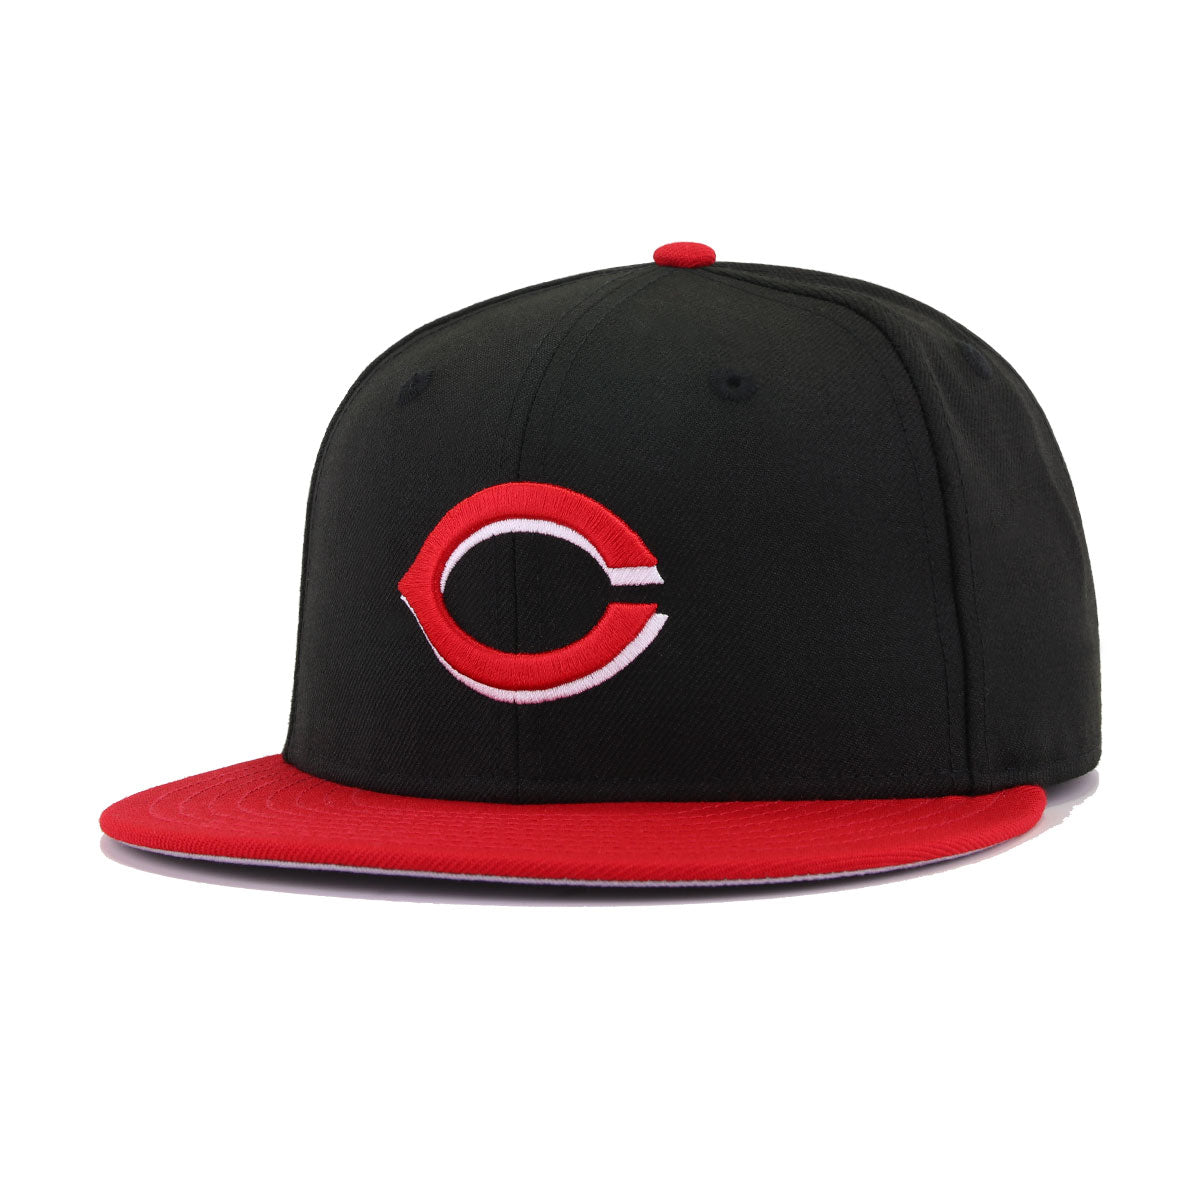 Cincinnati Reds Black Scarlet Alternate 2 Cooperstown New Era 59Fifty Fitted